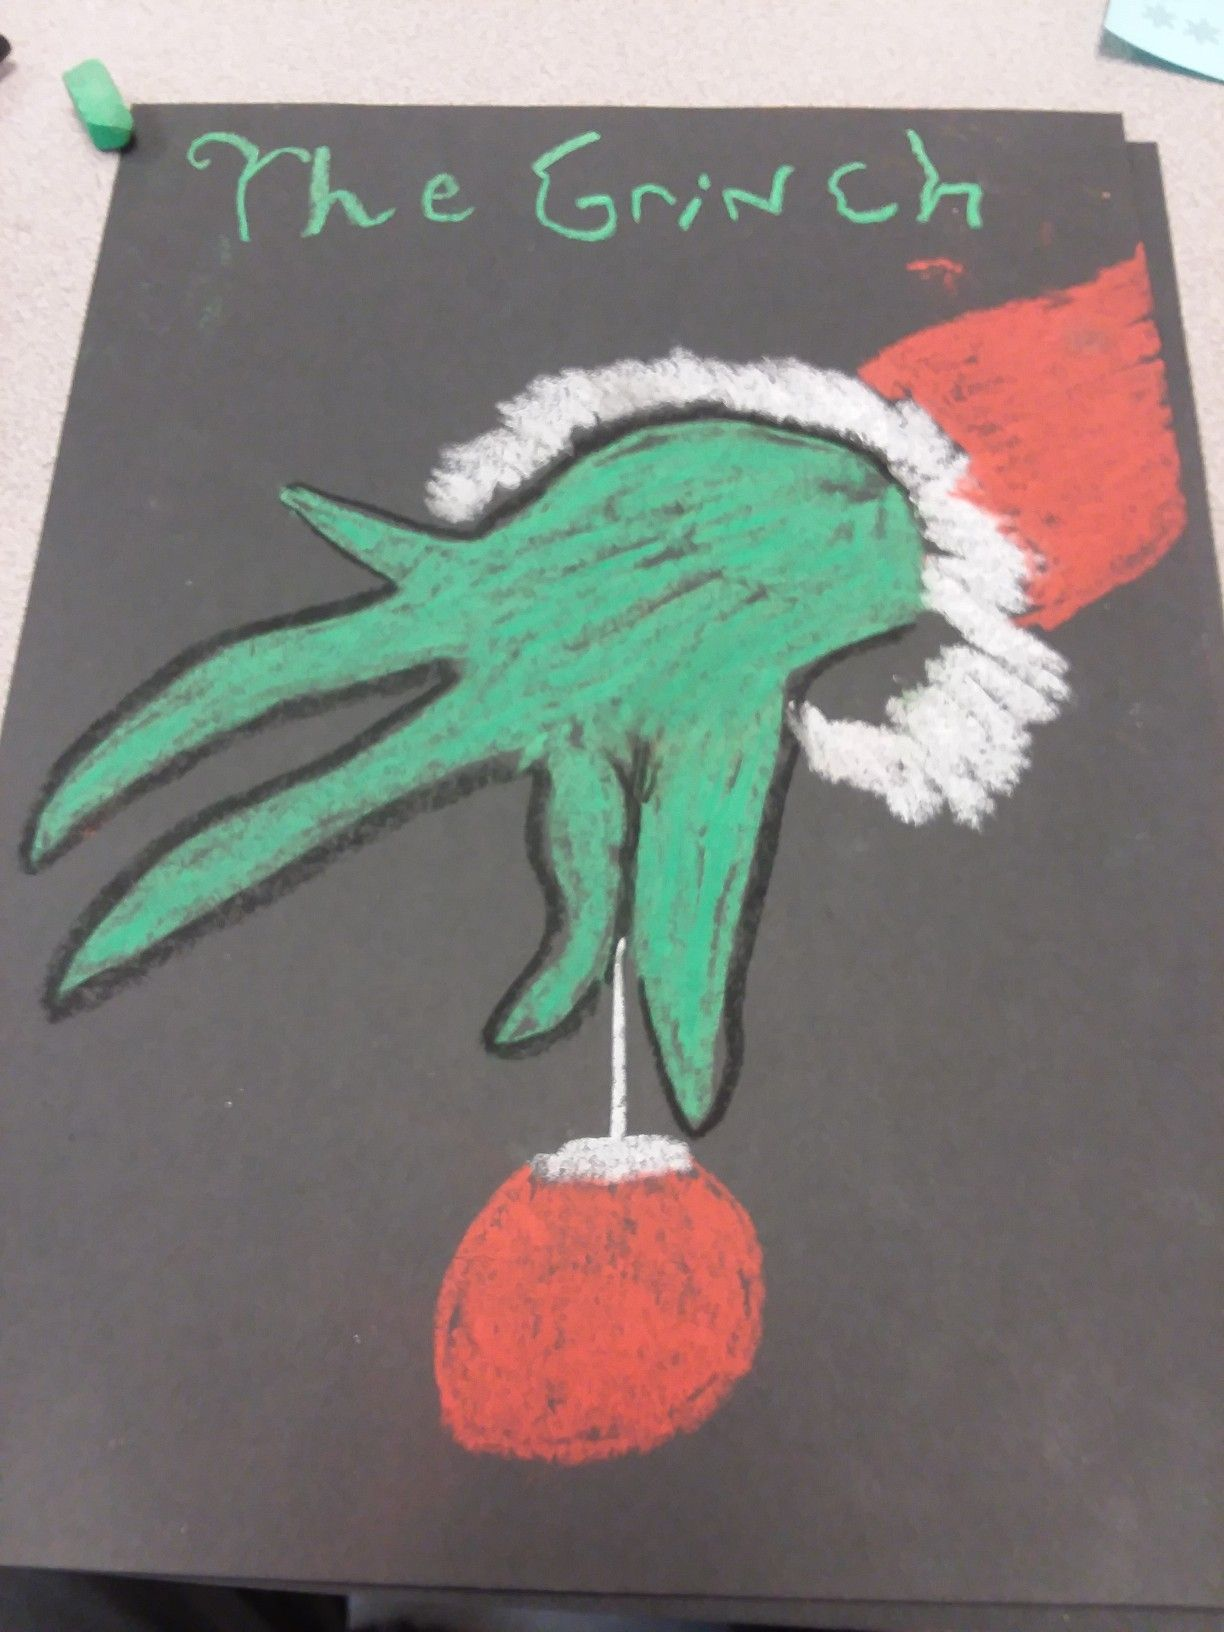 Grinch Easy Chalk Drawings Chalk Art Quotes Chalk Drawings